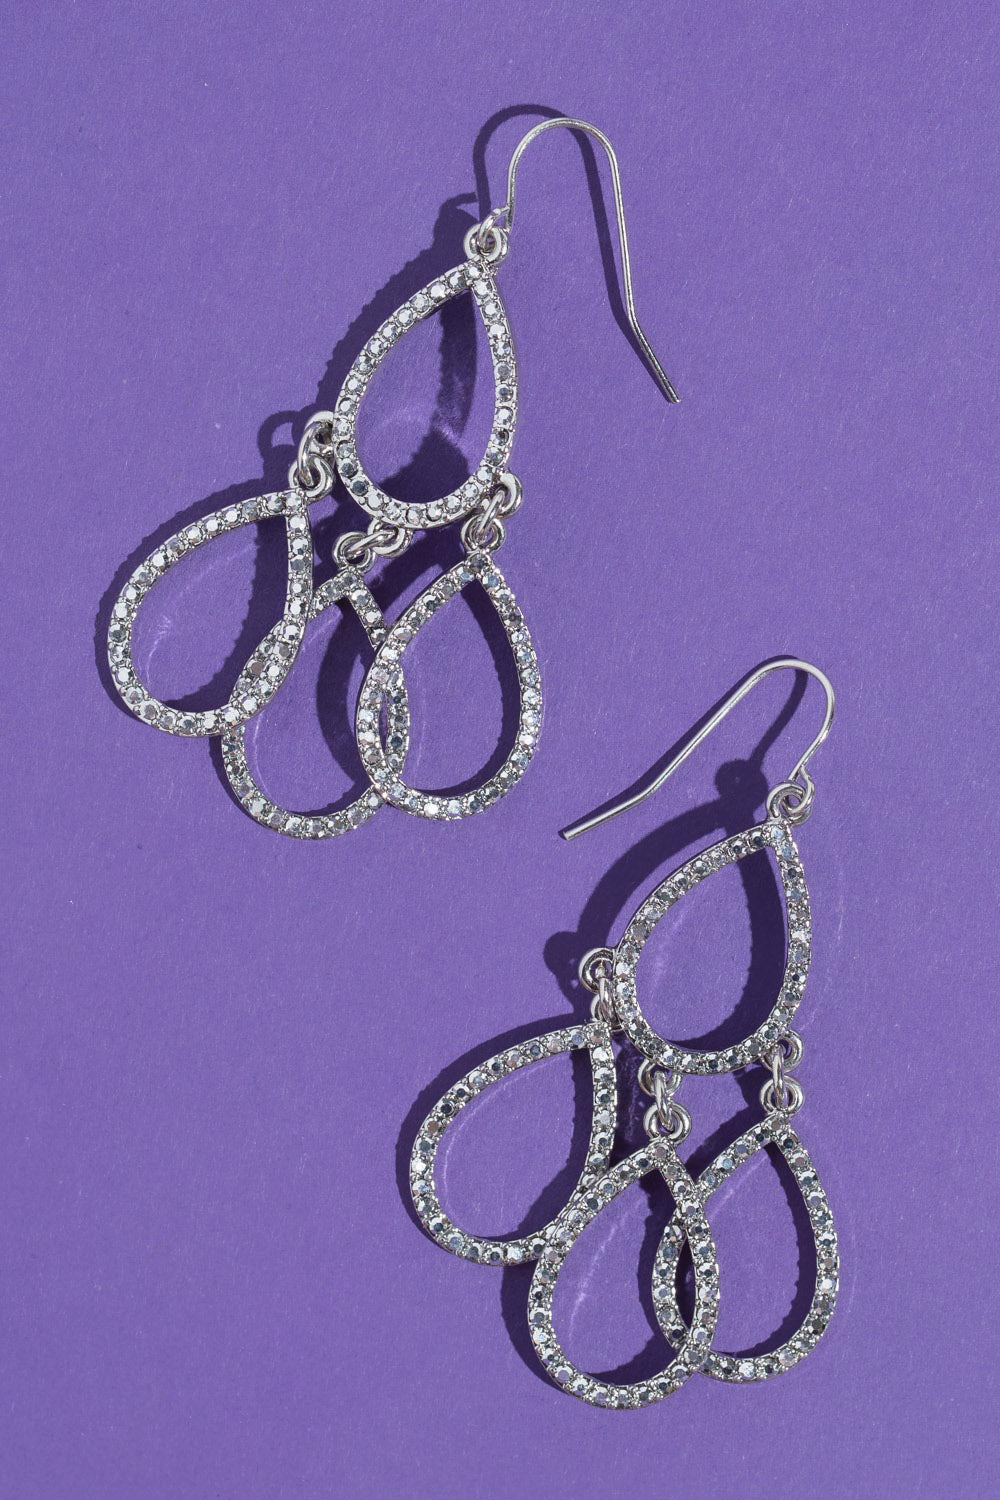 Type 2 Elegant Lady Earrings